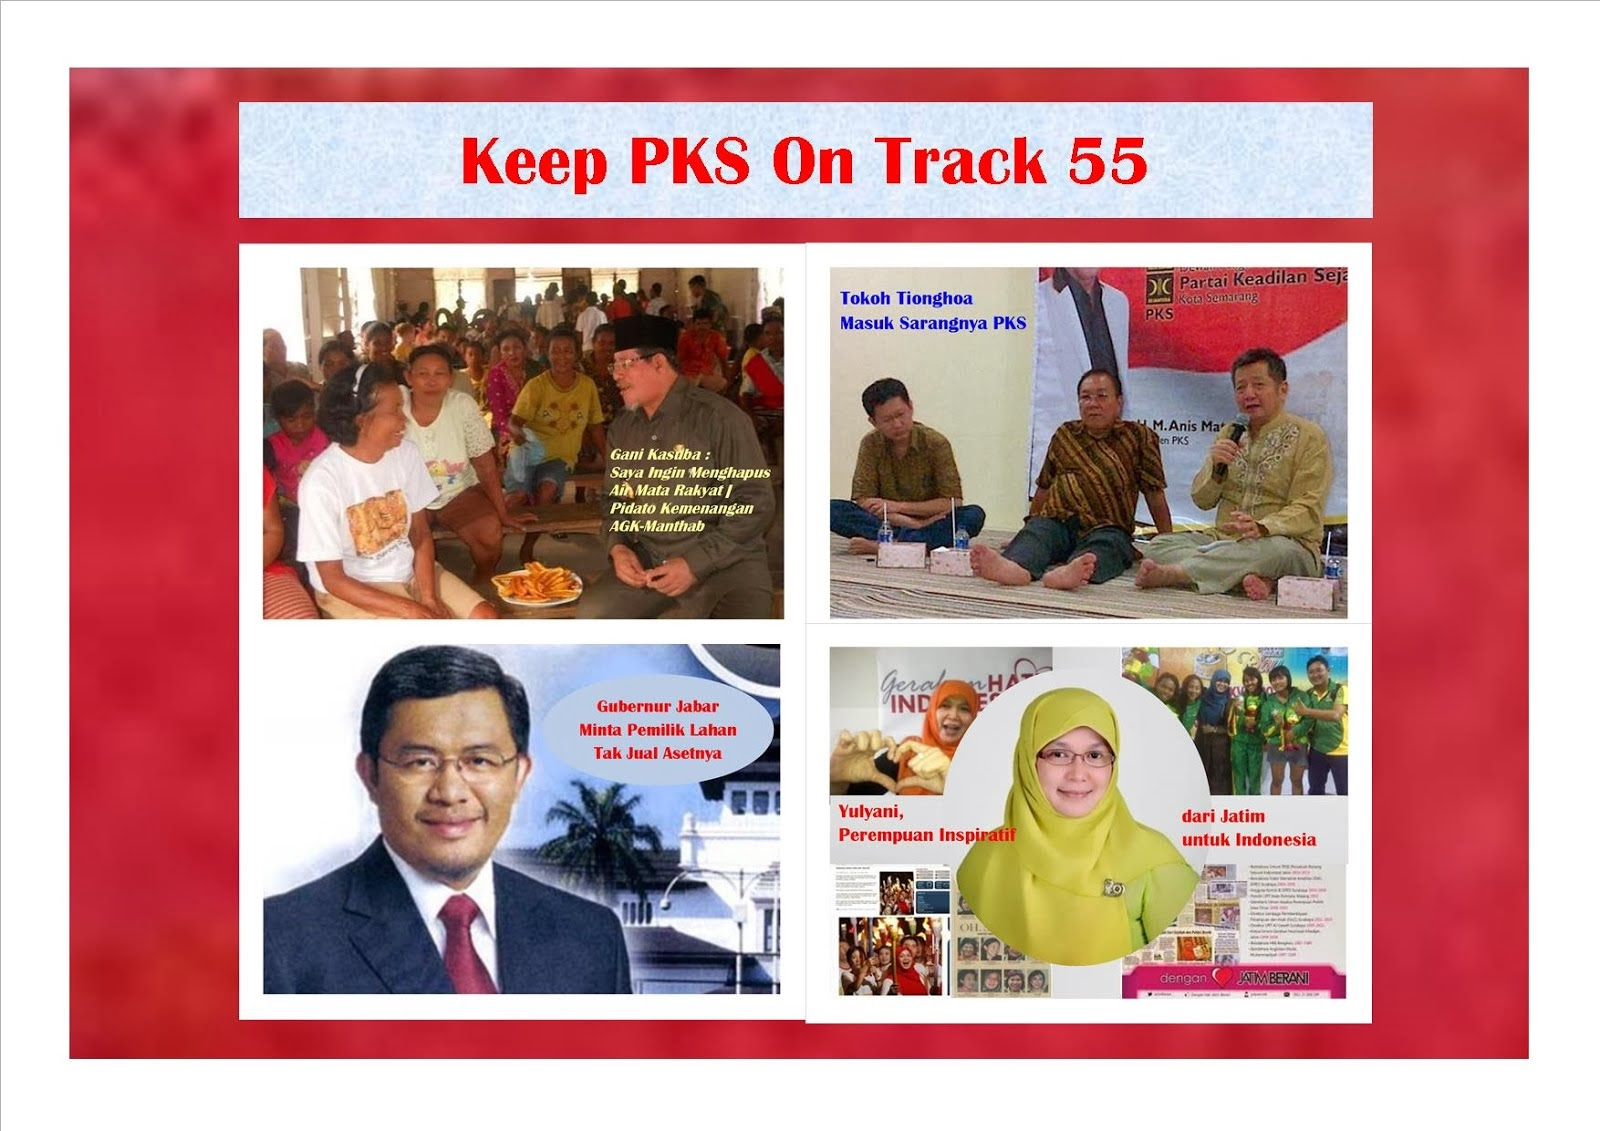 Keep PKS on Track 55